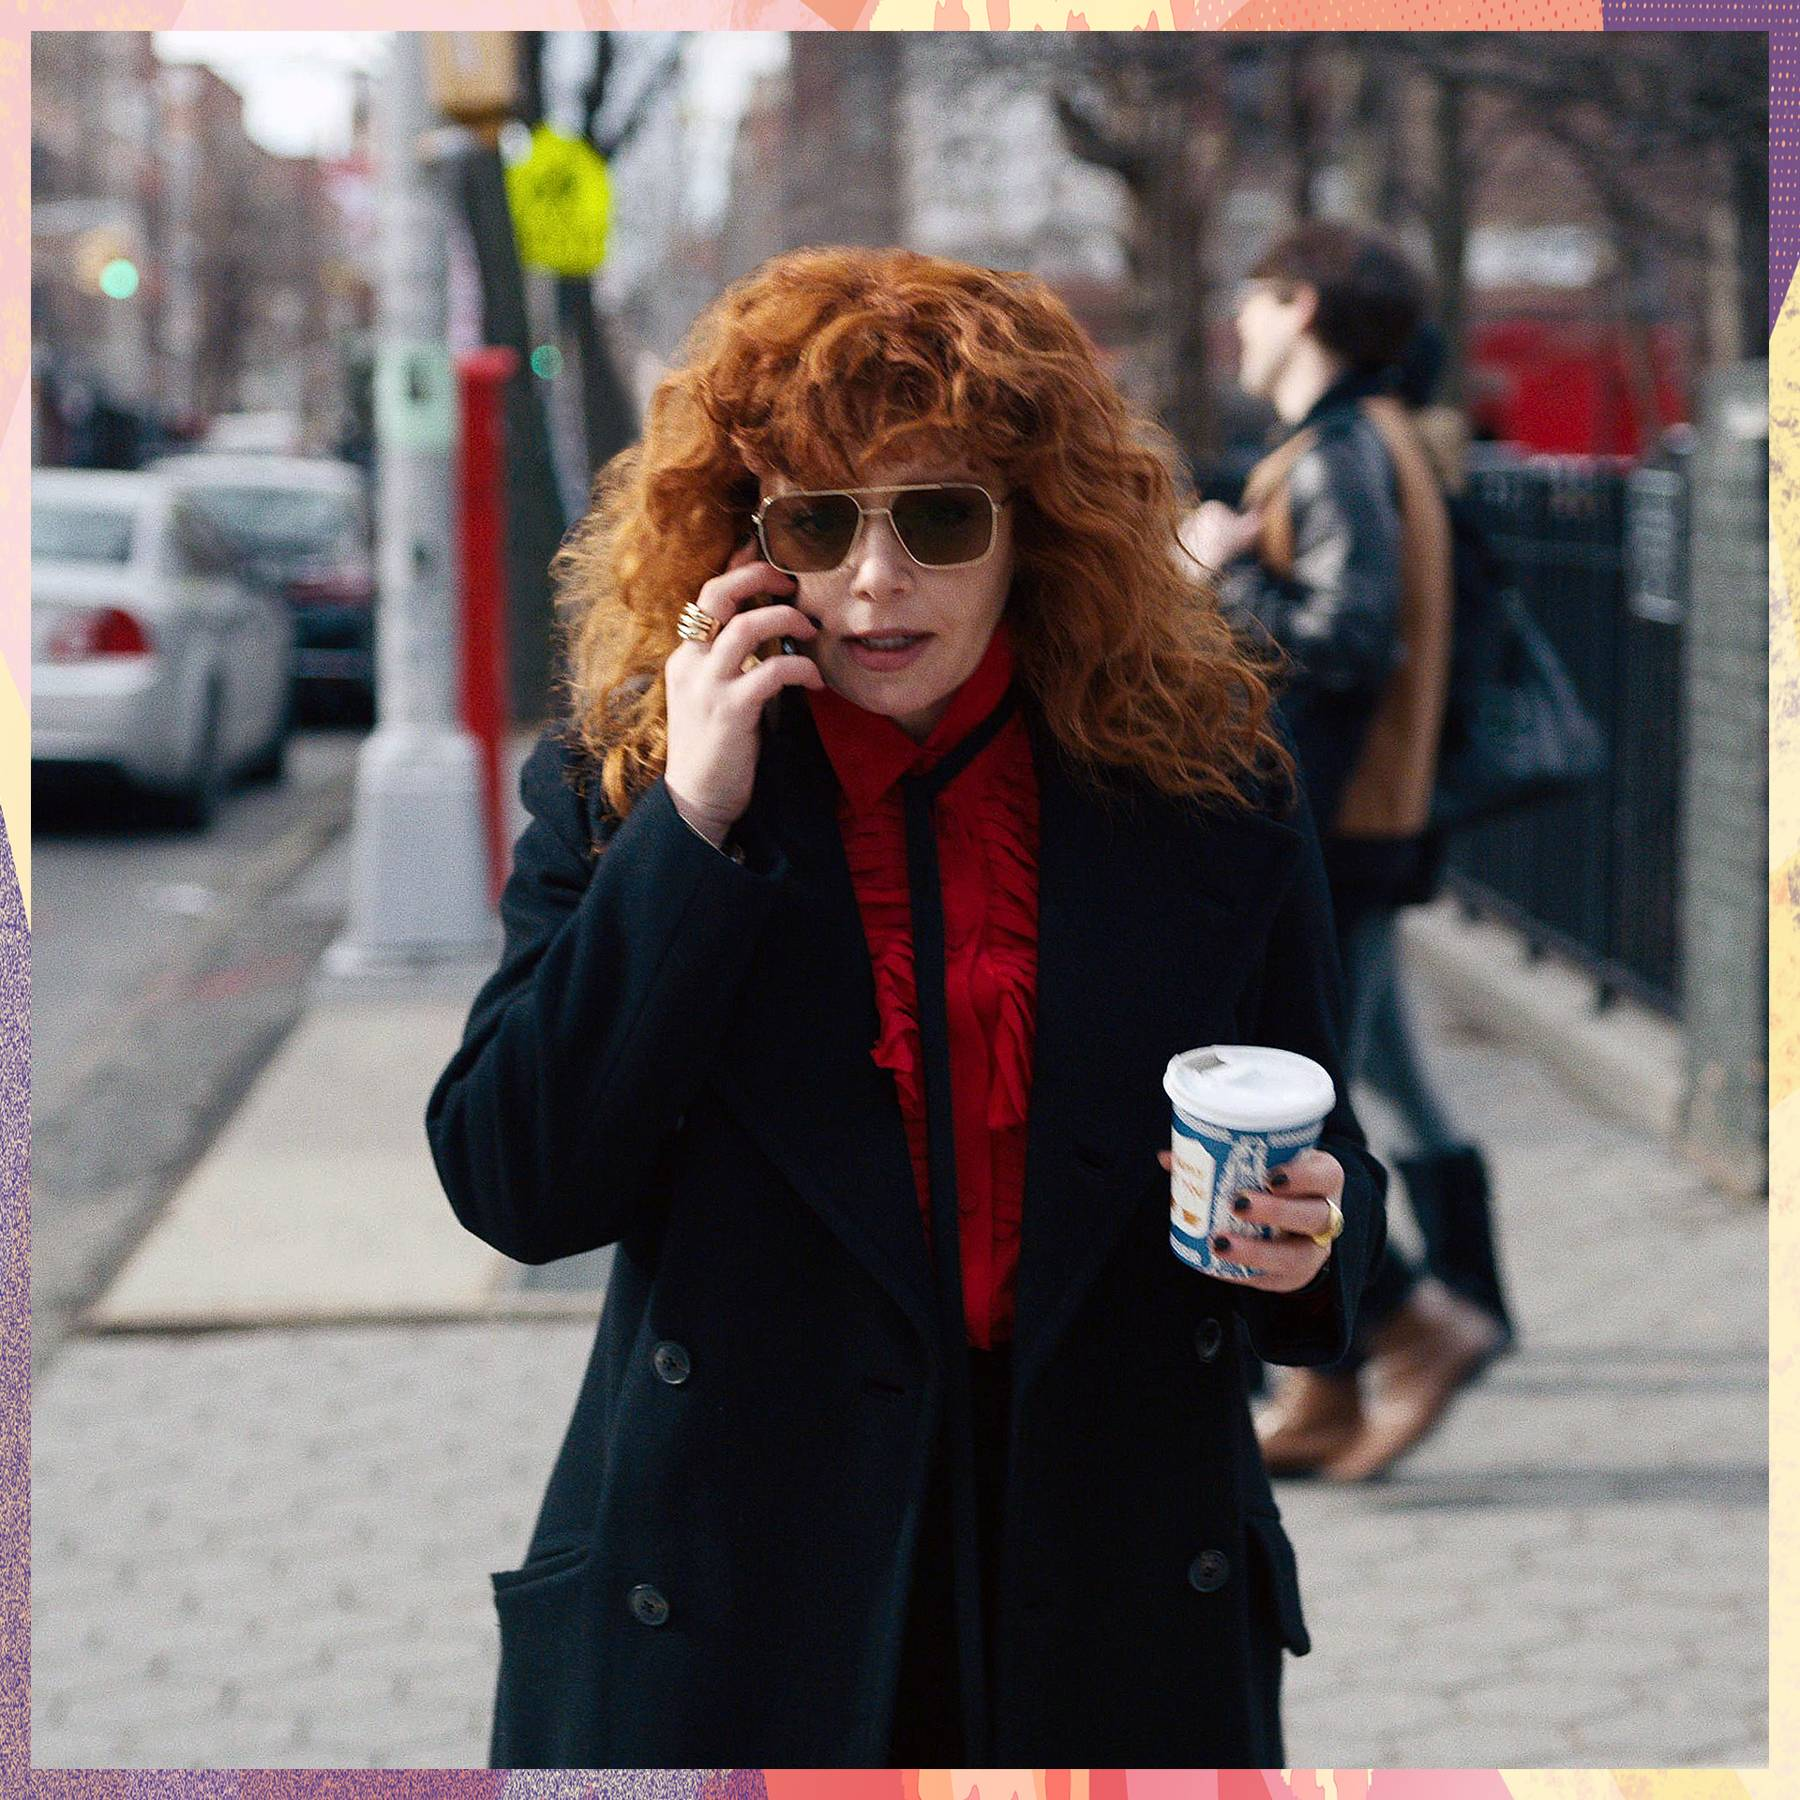 Netflix's Russian Doll season 2 has been confirmed, here's what you need to know